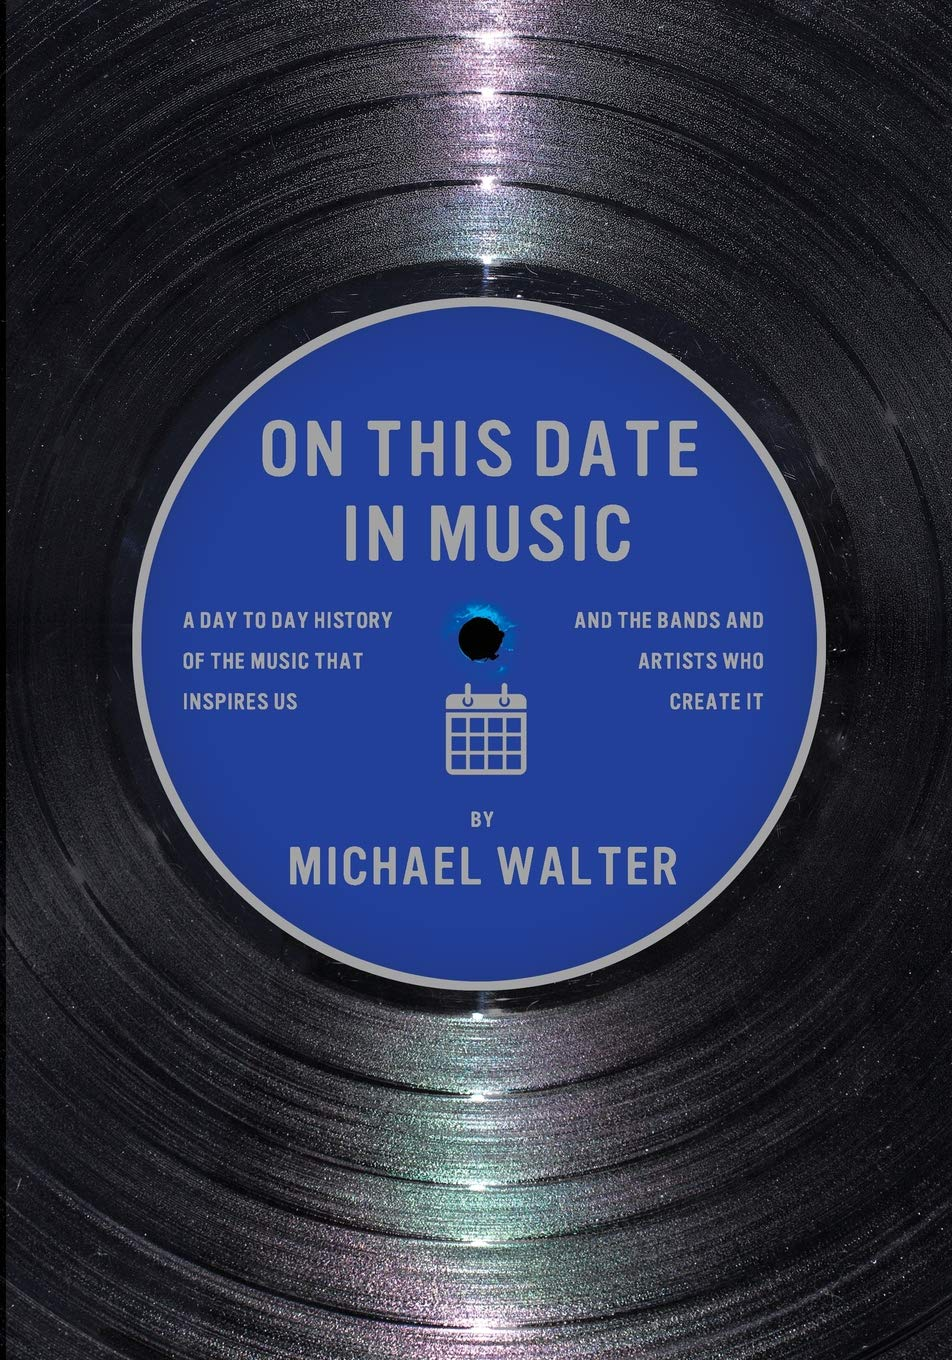 On This Date In Music: A Day to Day History of the Music that Inspires Us and the Artists Who Create It - Mike Walter